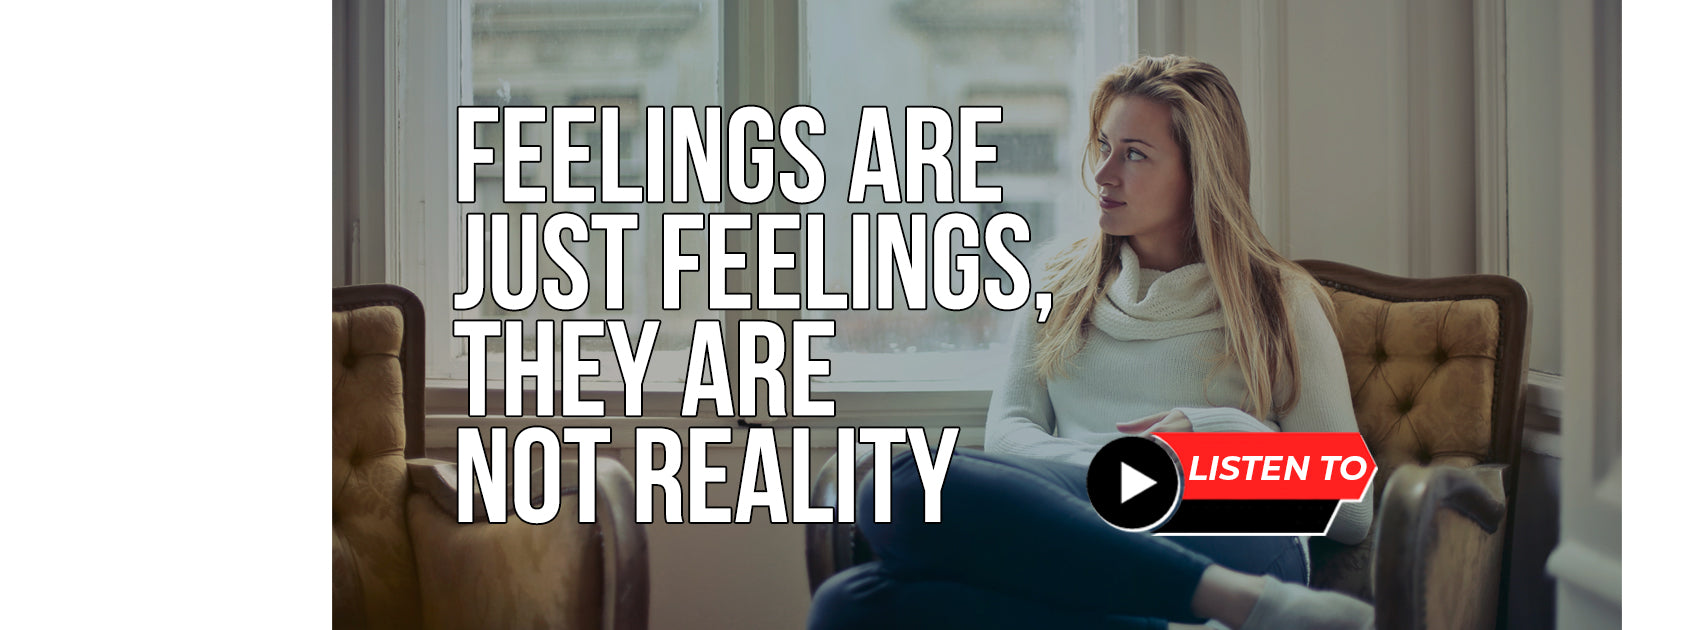 Feelings Are Just Feelings, They Are Not Reality